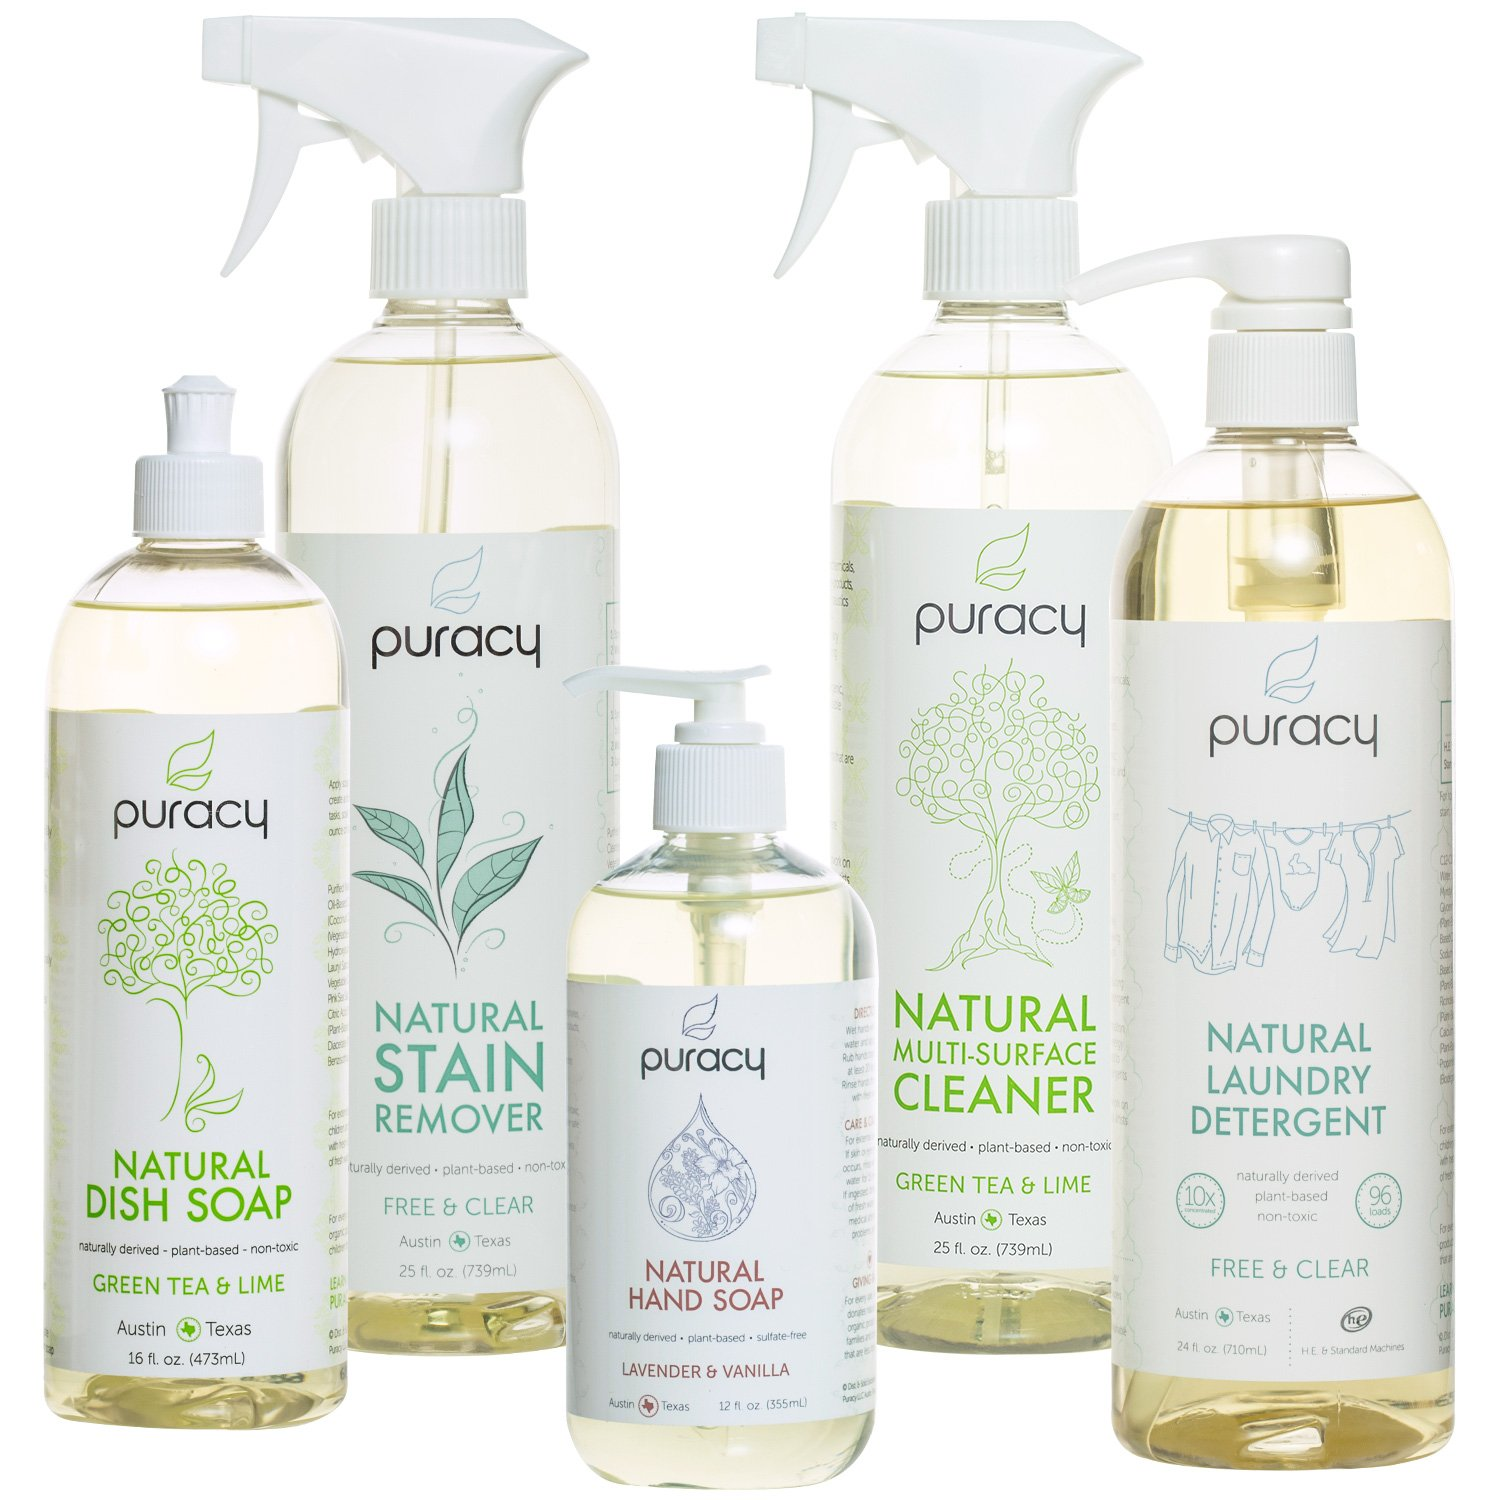 Puracy Natural Home Cleaning Essentials Set - Hand Soap, Dish Soap, Laundry Detergent, Multi-Surface Cleaner, Laundry Stain Remover Bundle - Pack of 5 by Puracy   B00HQLFHVI